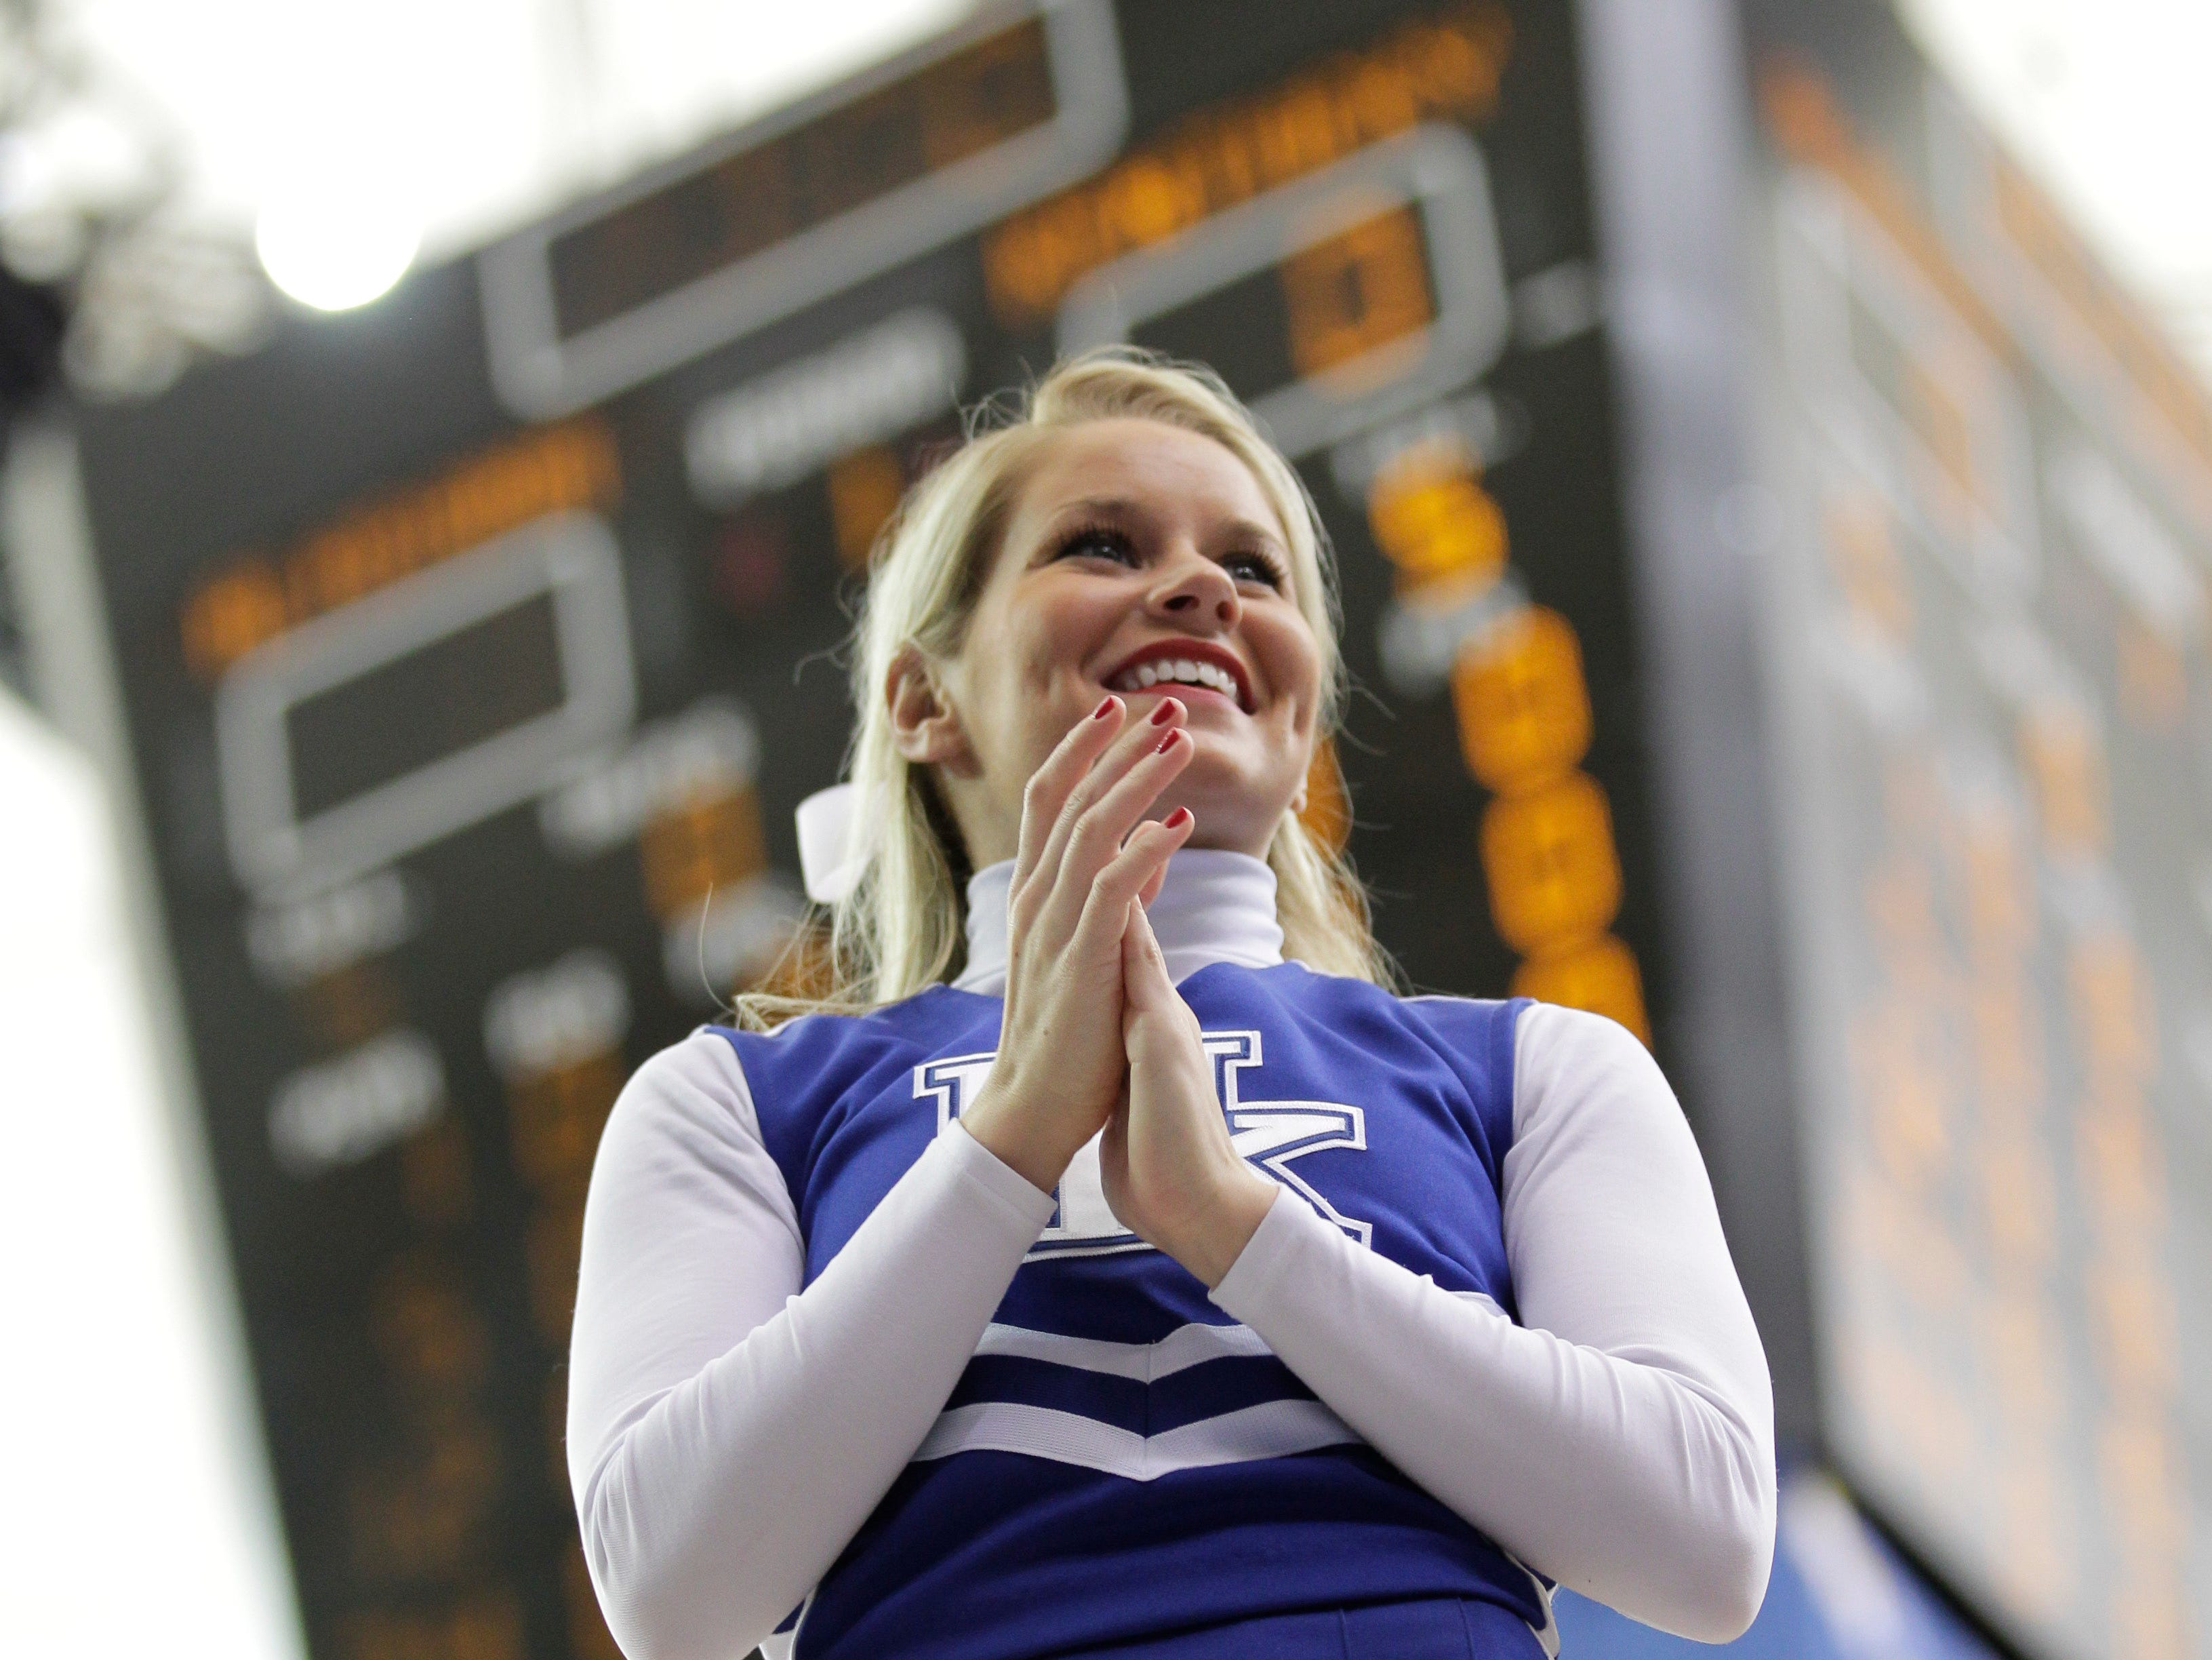 A Kentucky cheerleader performs during the first half of an NCAA college basketball game against Alabama at the Southeastern Conference tournament, Saturday, March 12, 2011, in Atlanta. (AP Photo/Dave Martin)